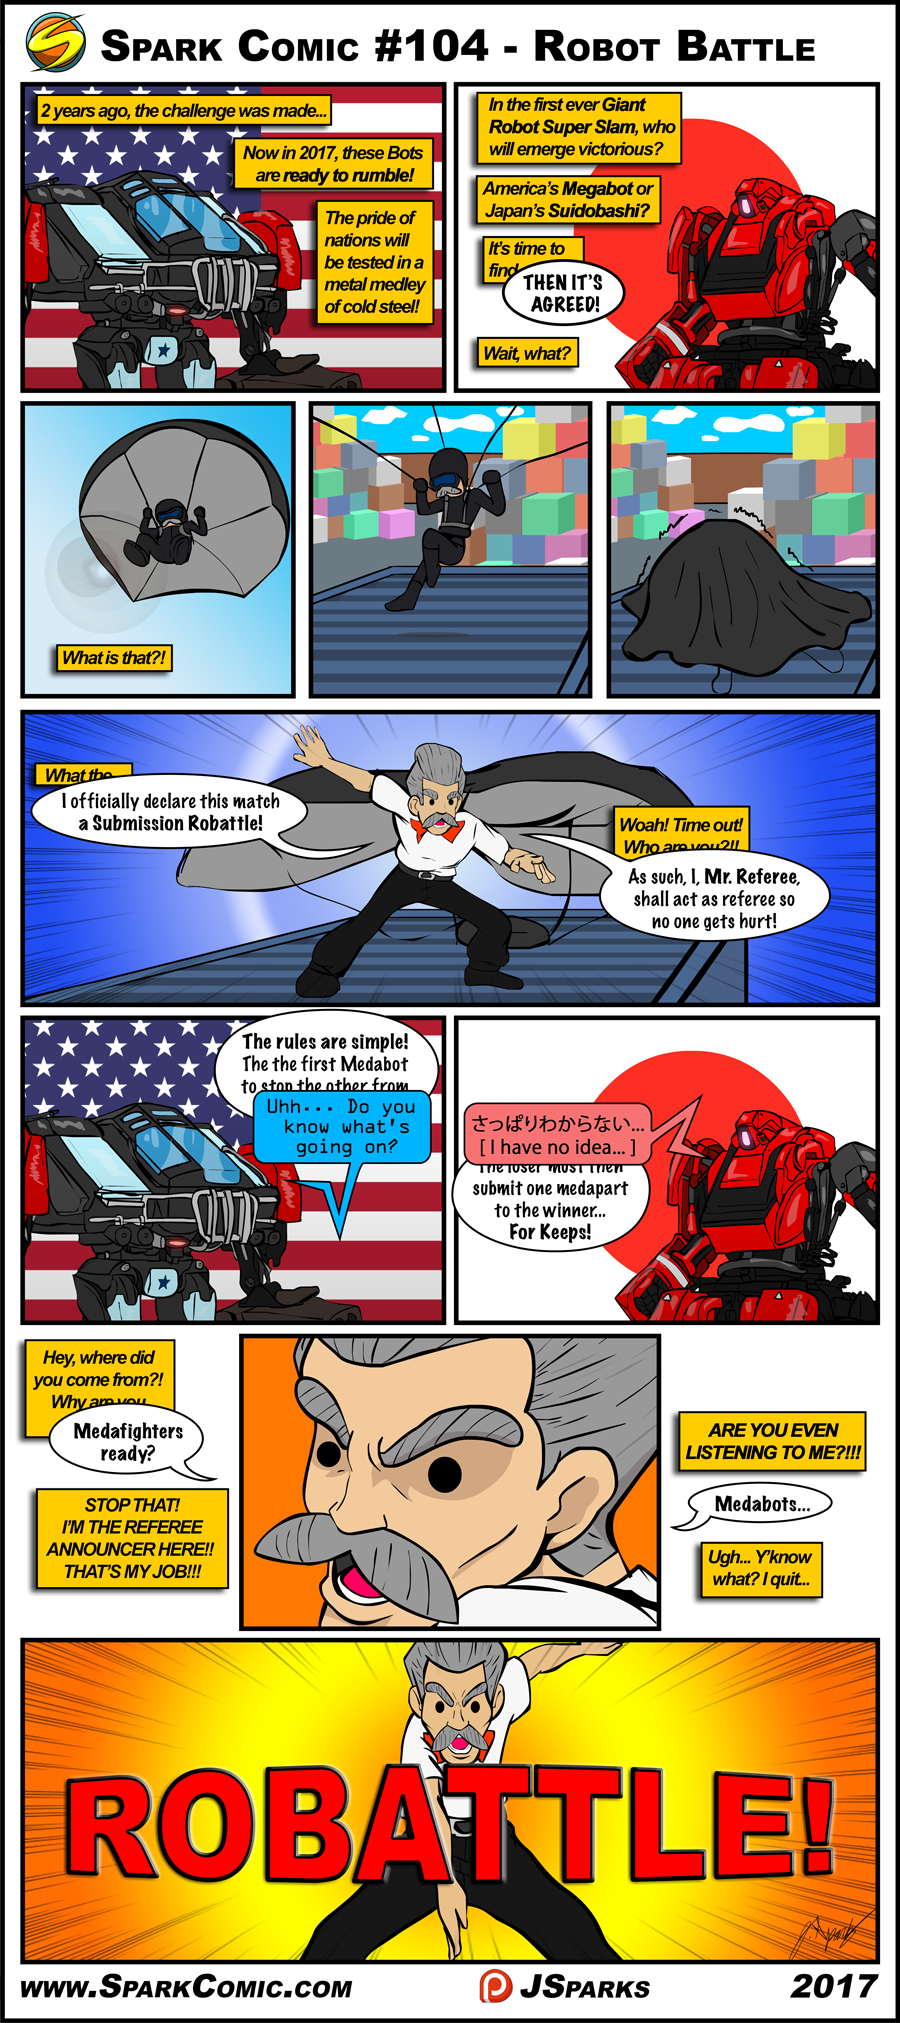 Spark Comic #104 - Robot Battle